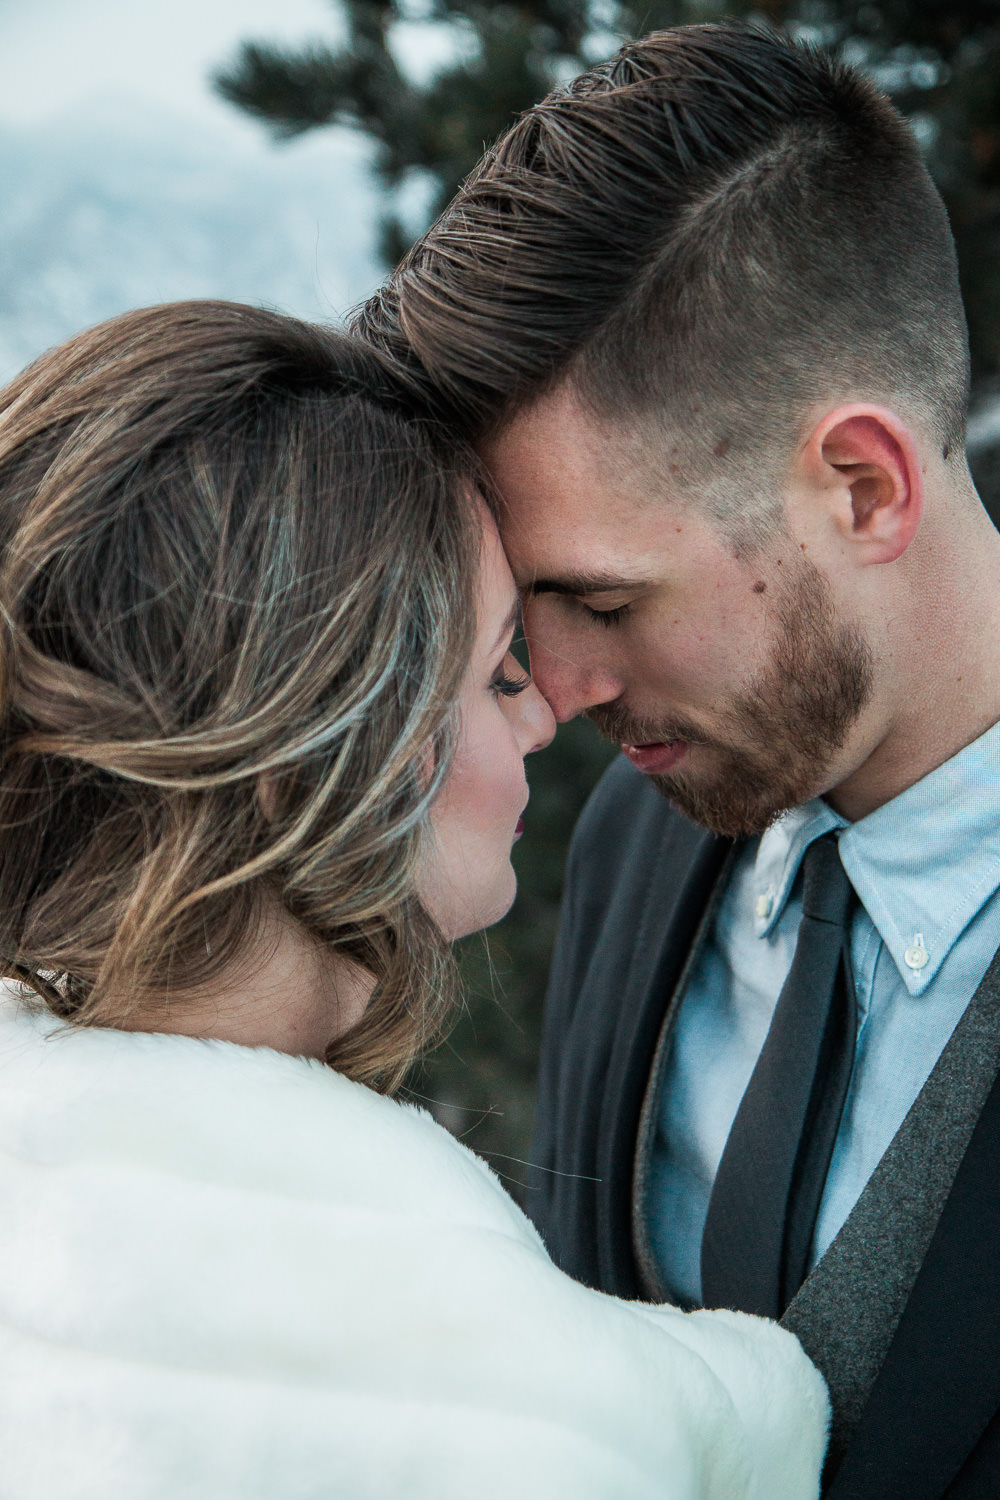 Adventure elopement photographers Colorado Rockies